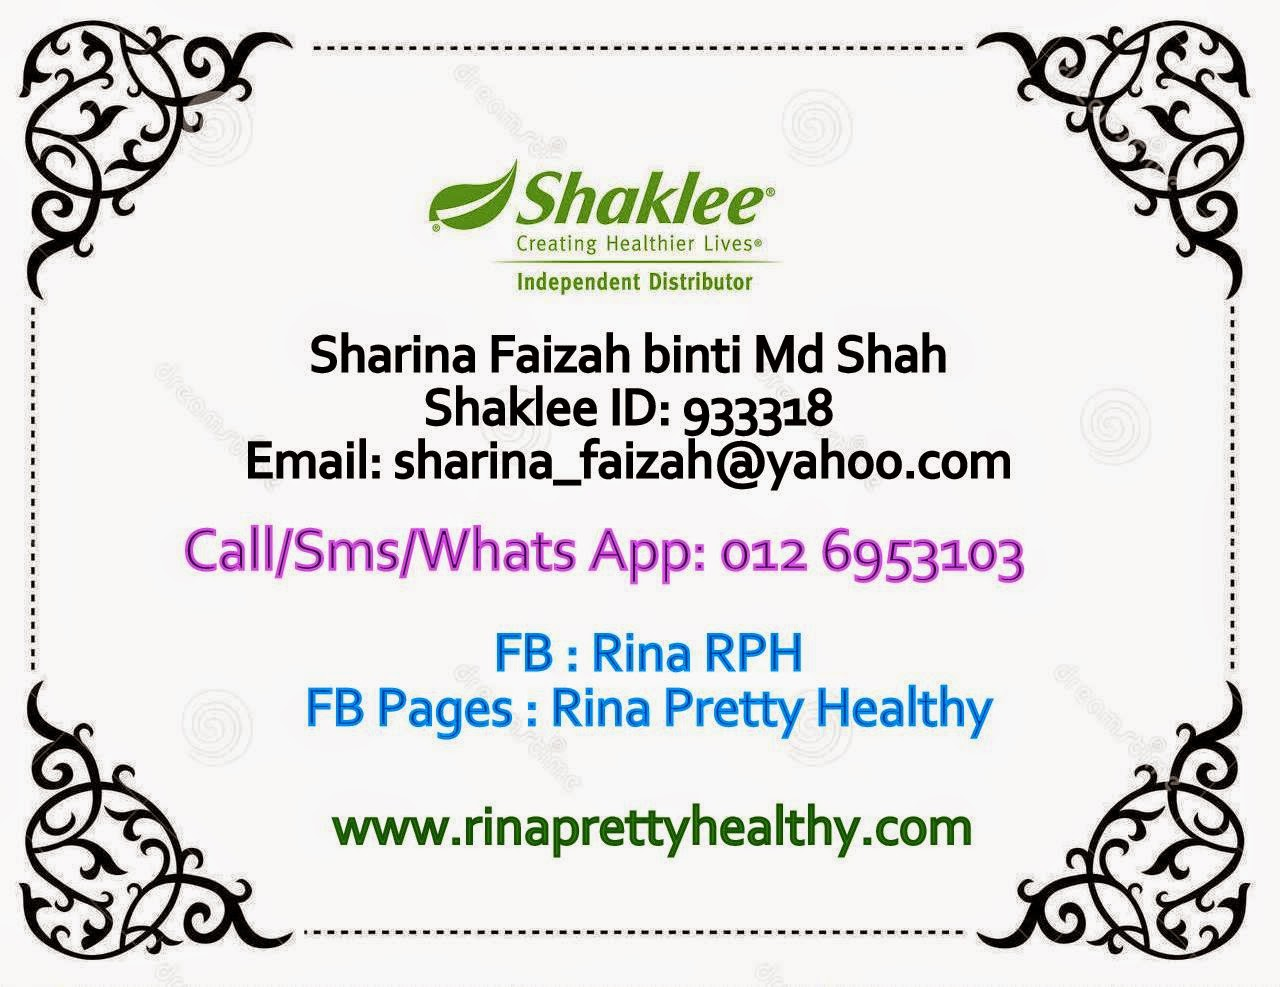 Your Shaklee Distributor